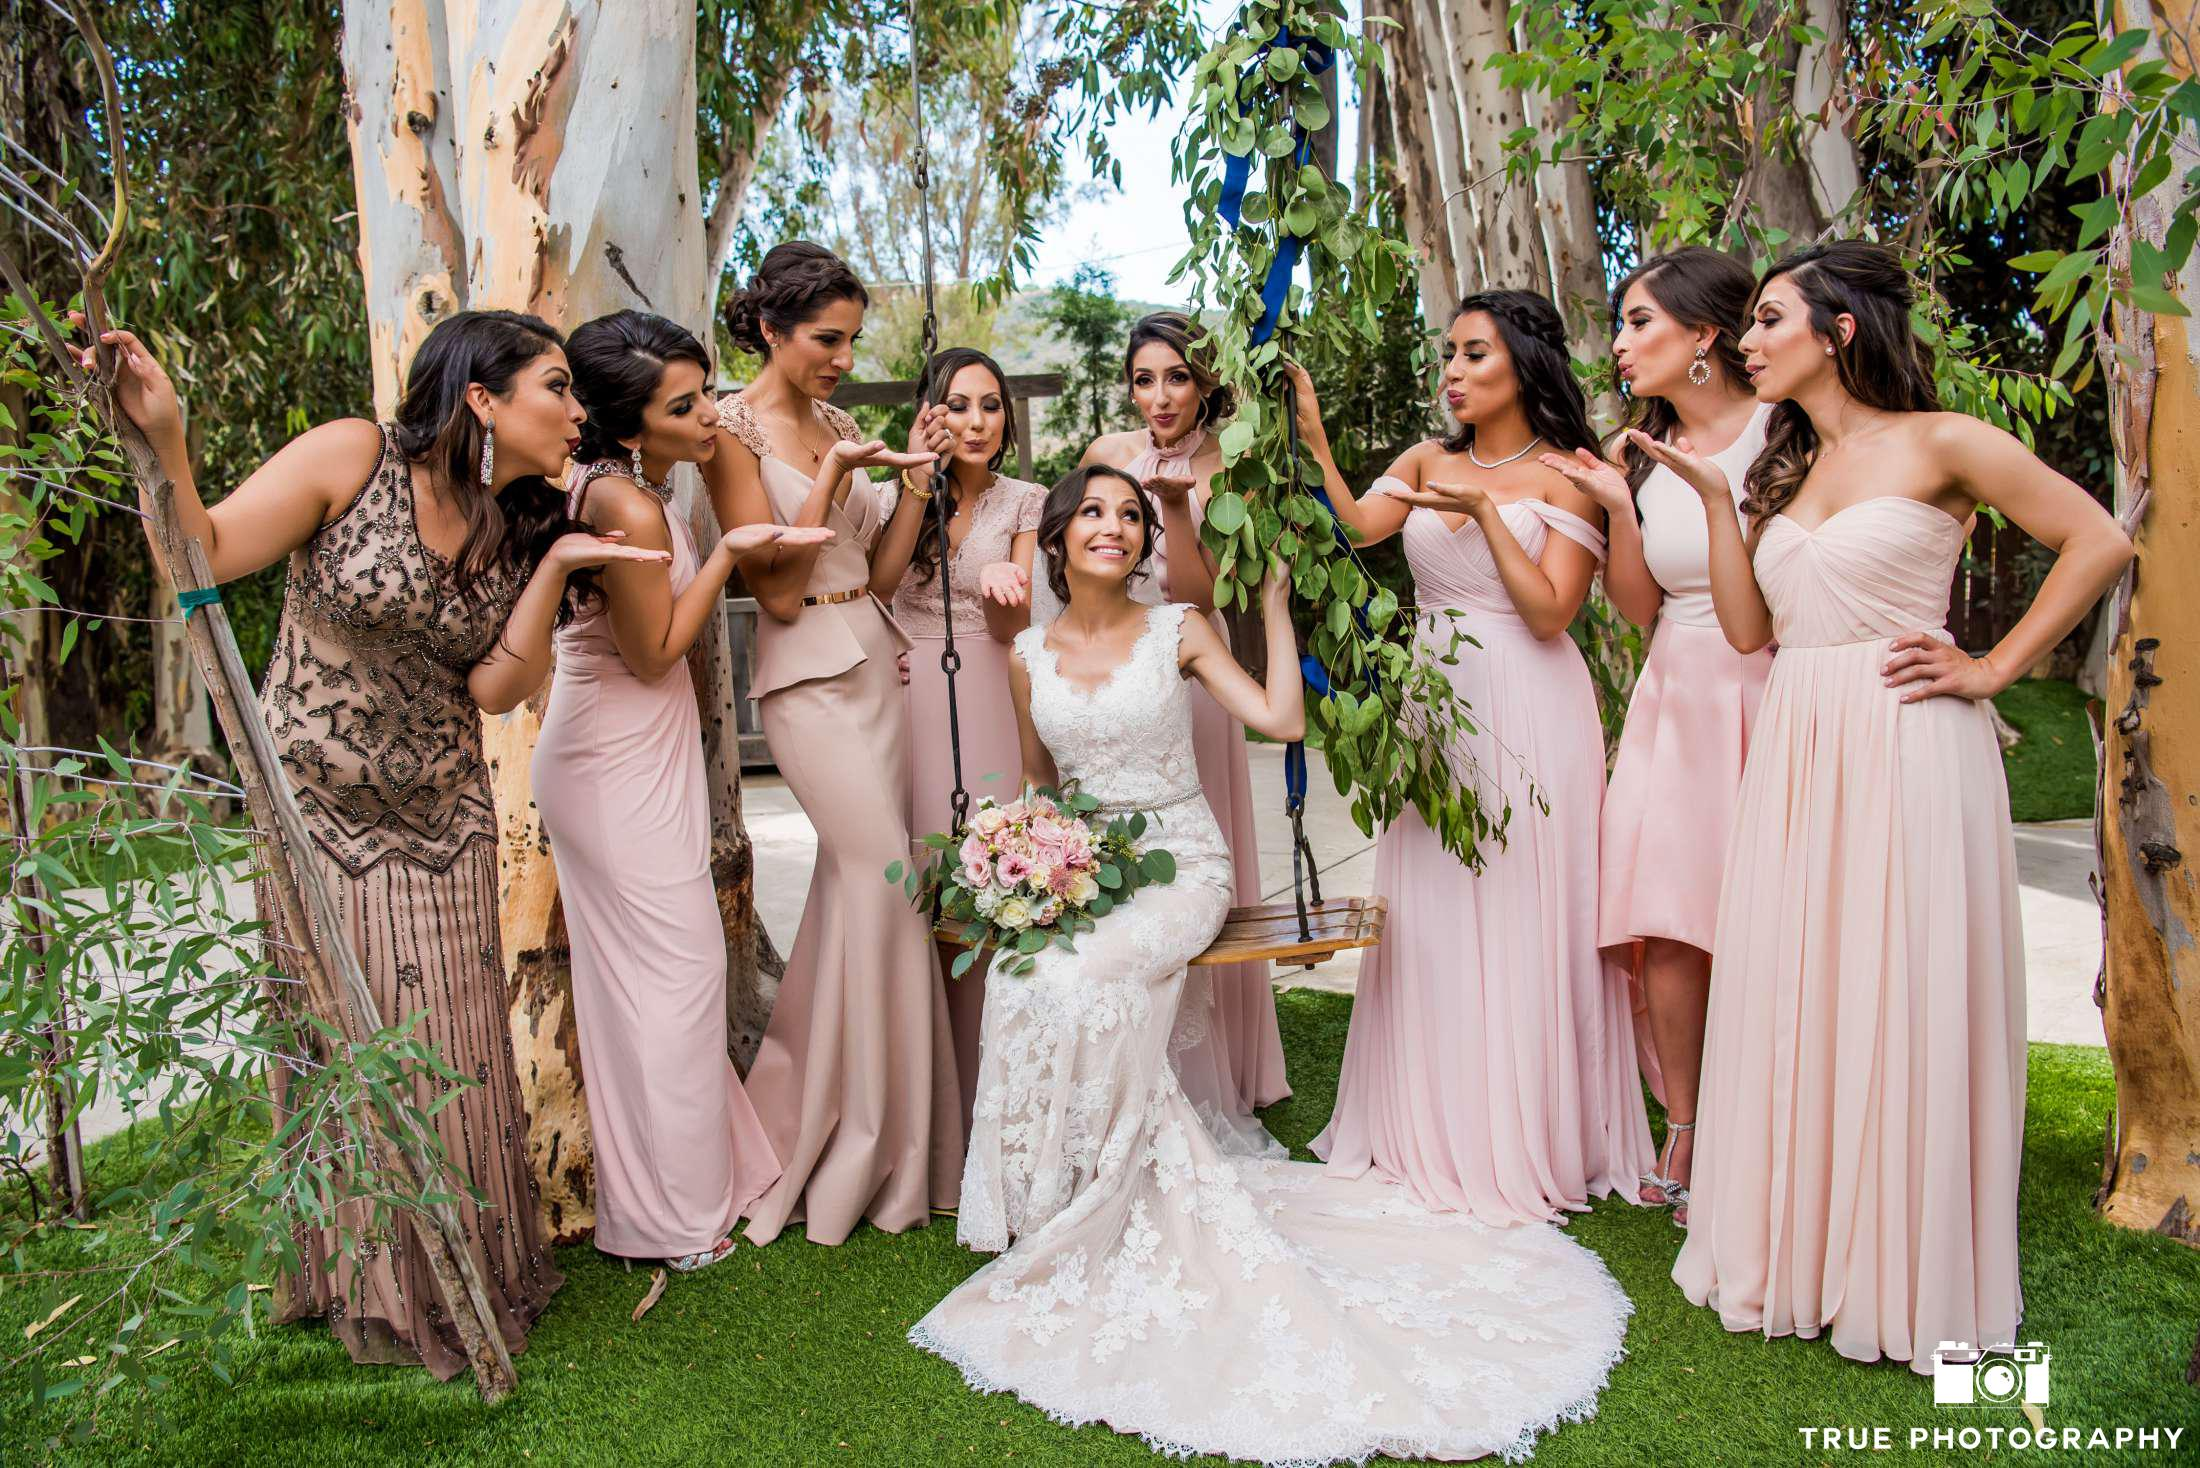 Fairy Tale Wedding Pictures with Bridal Party Dresses